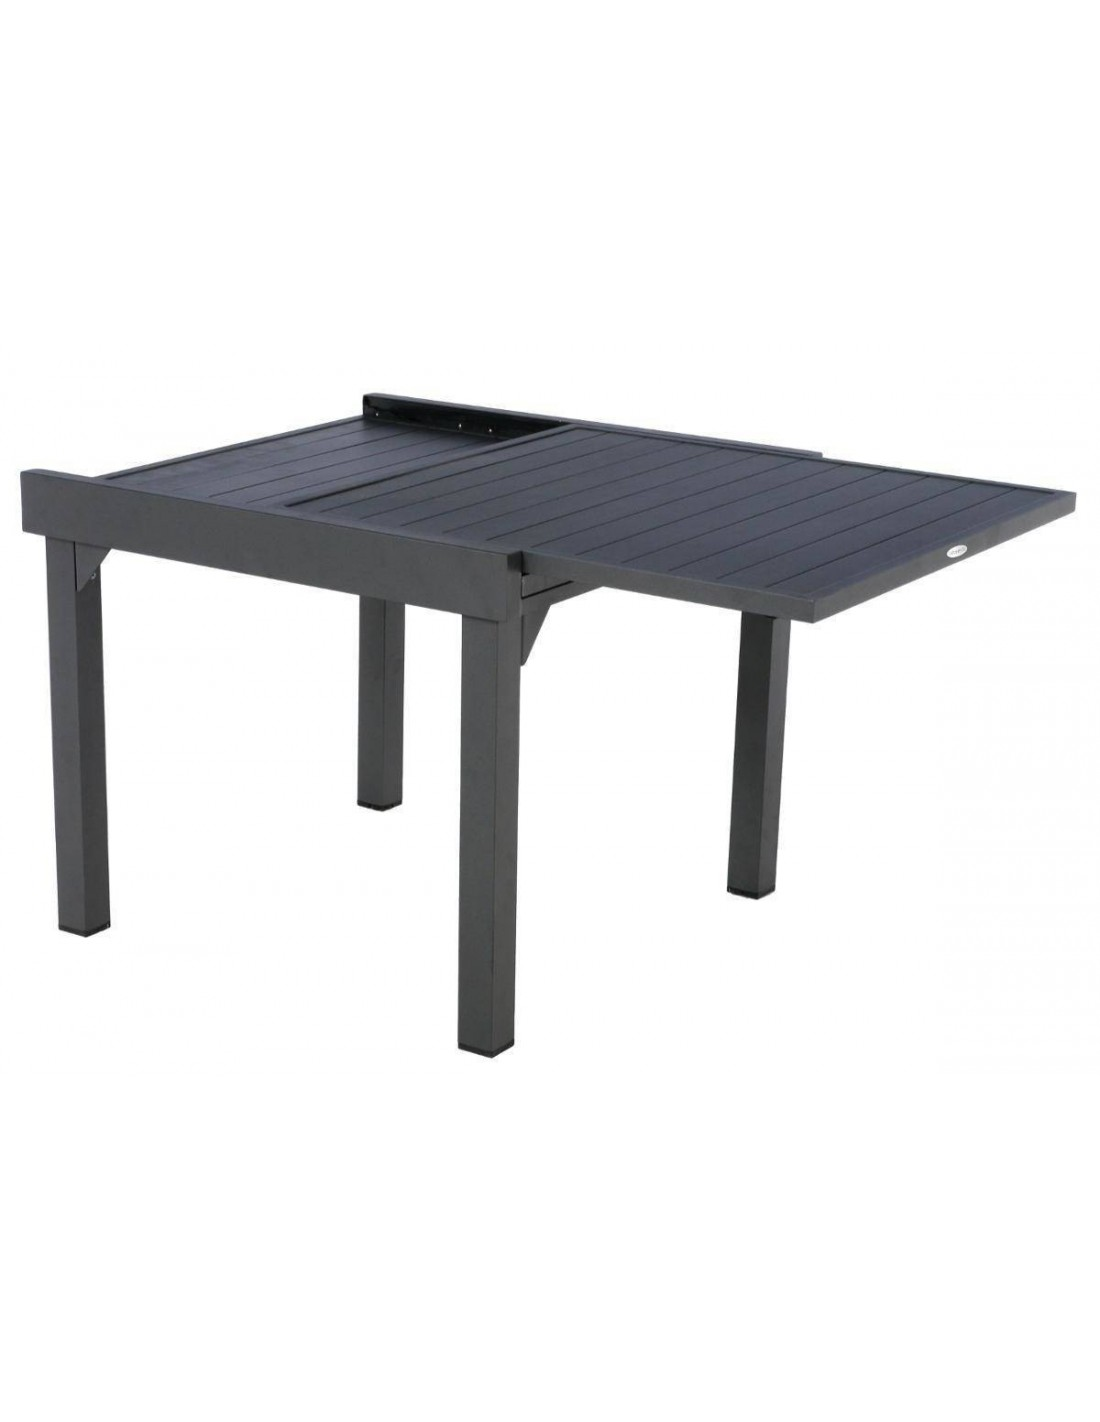 table piazza extensible aluminium 90 180cm graphite ou taupe hesp ride. Black Bedroom Furniture Sets. Home Design Ideas